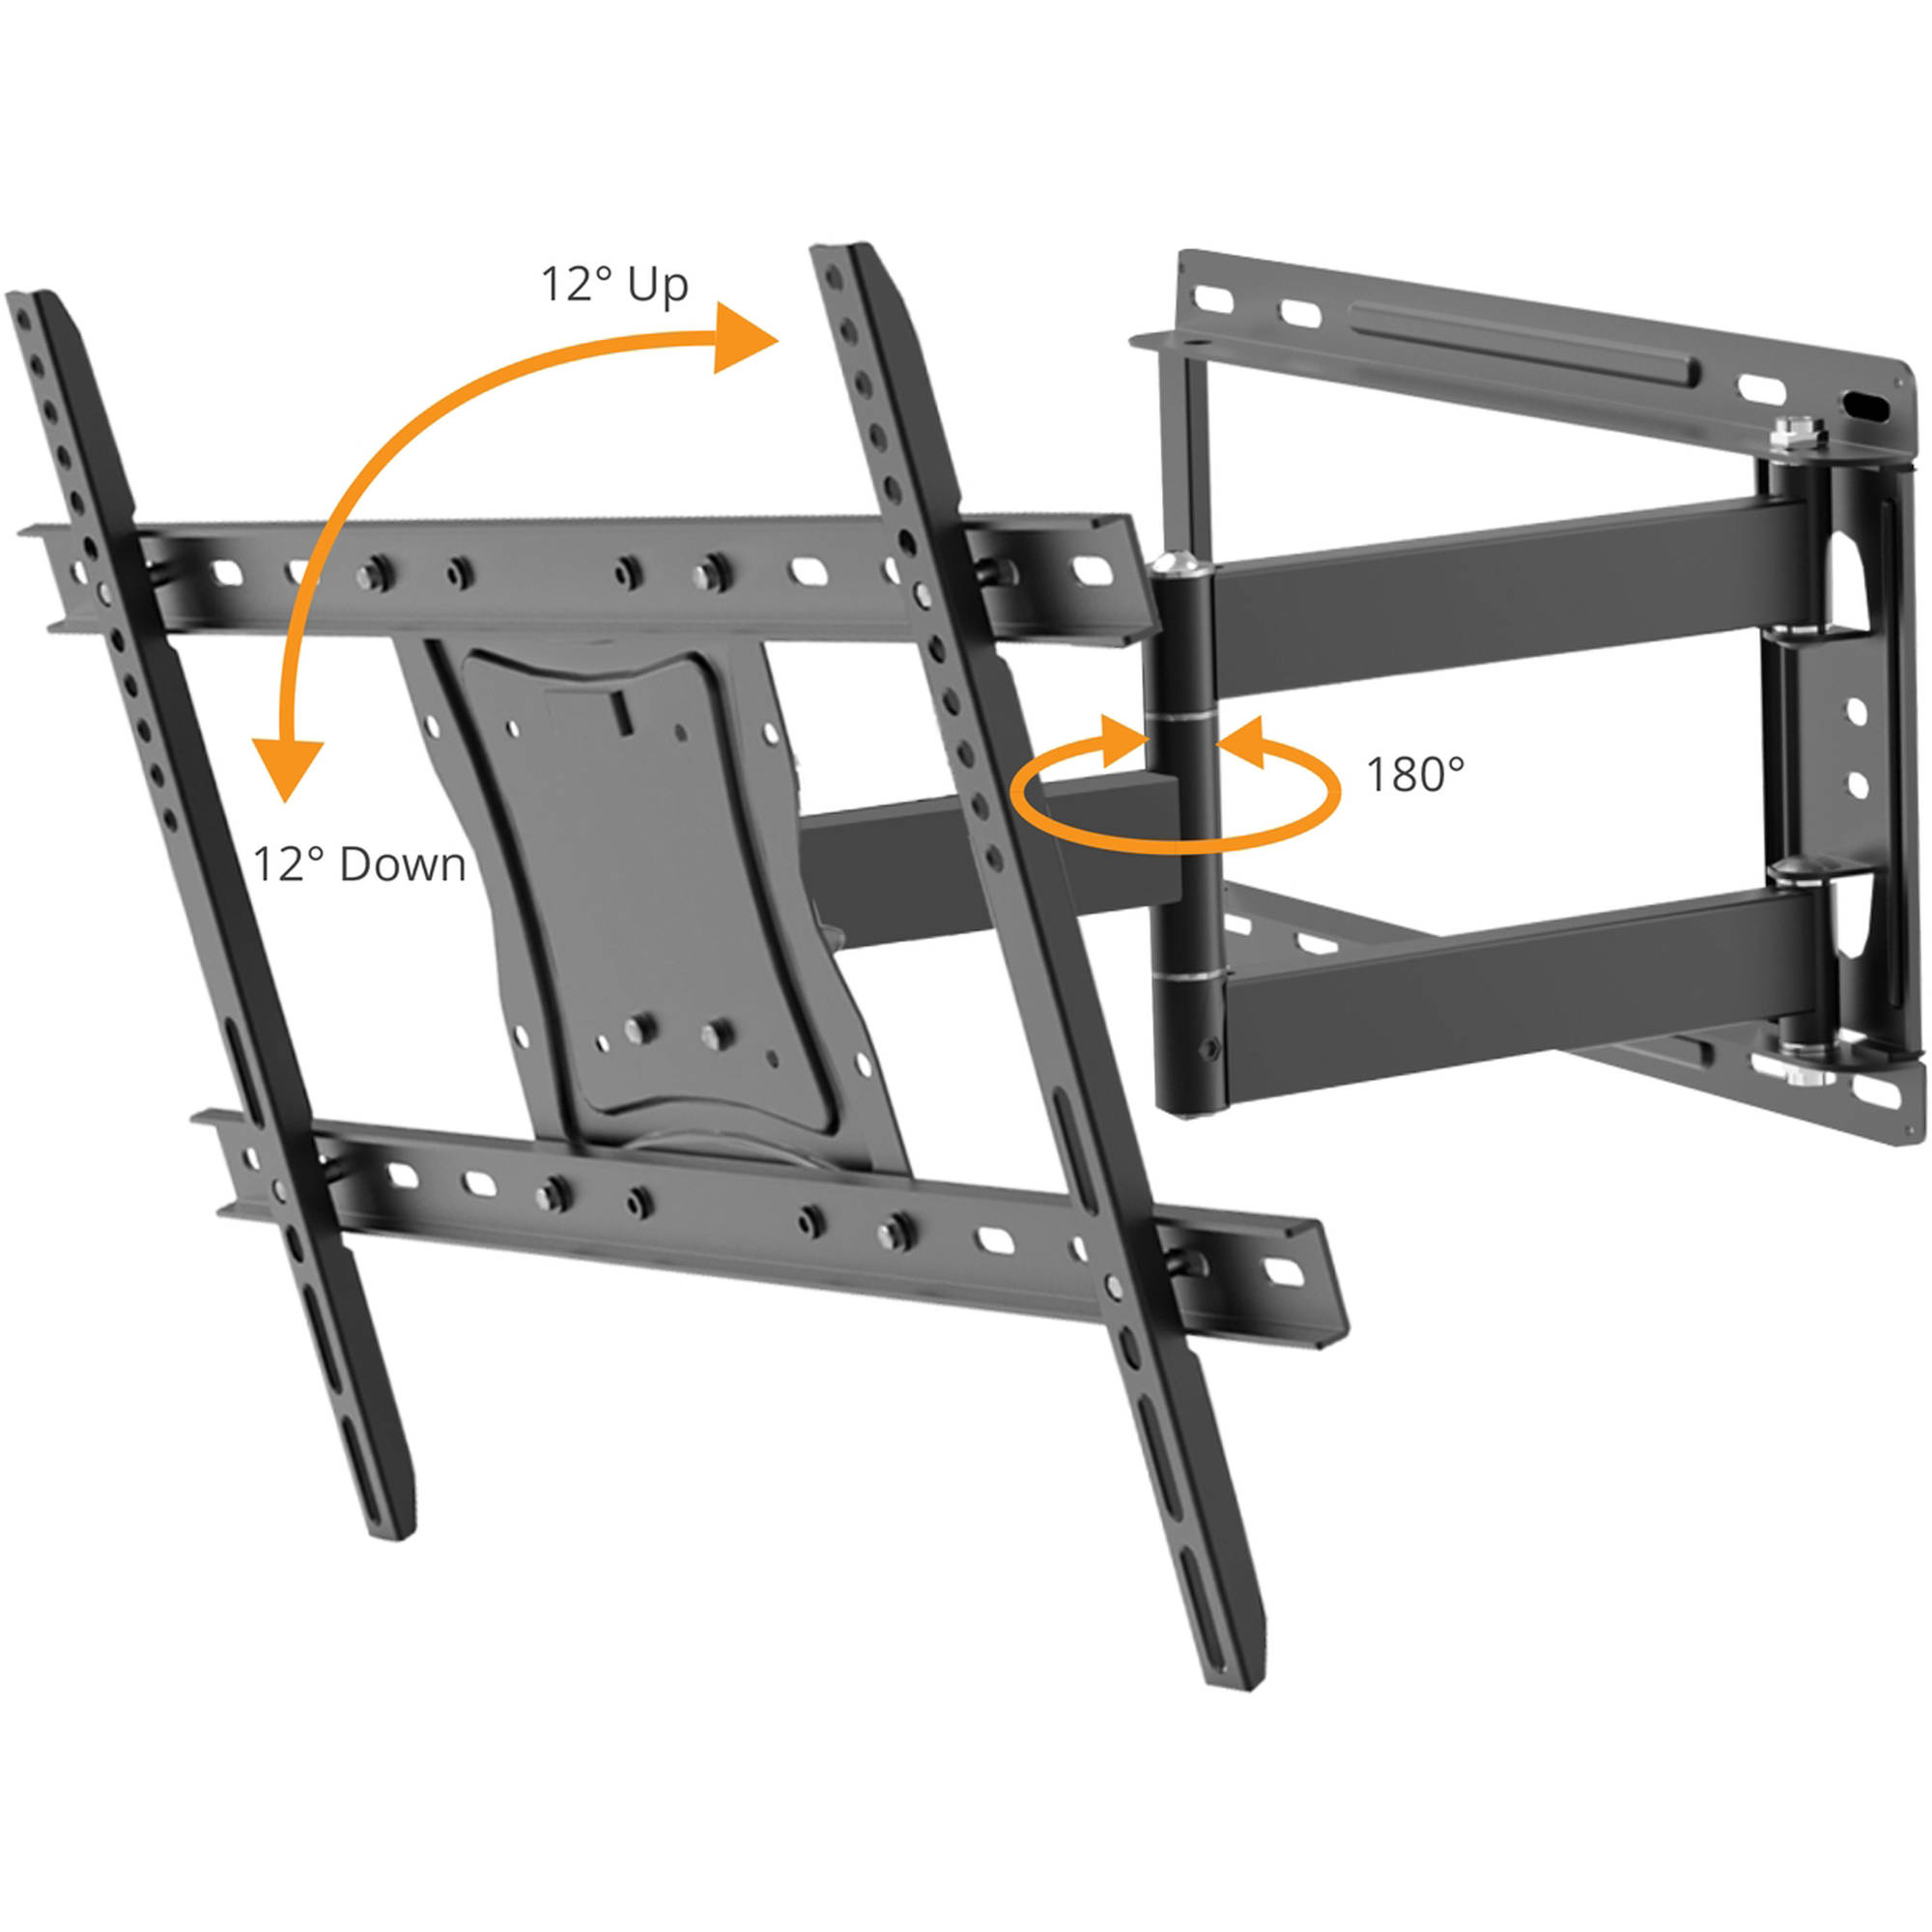 Full Motion TV Wall Mount for 19